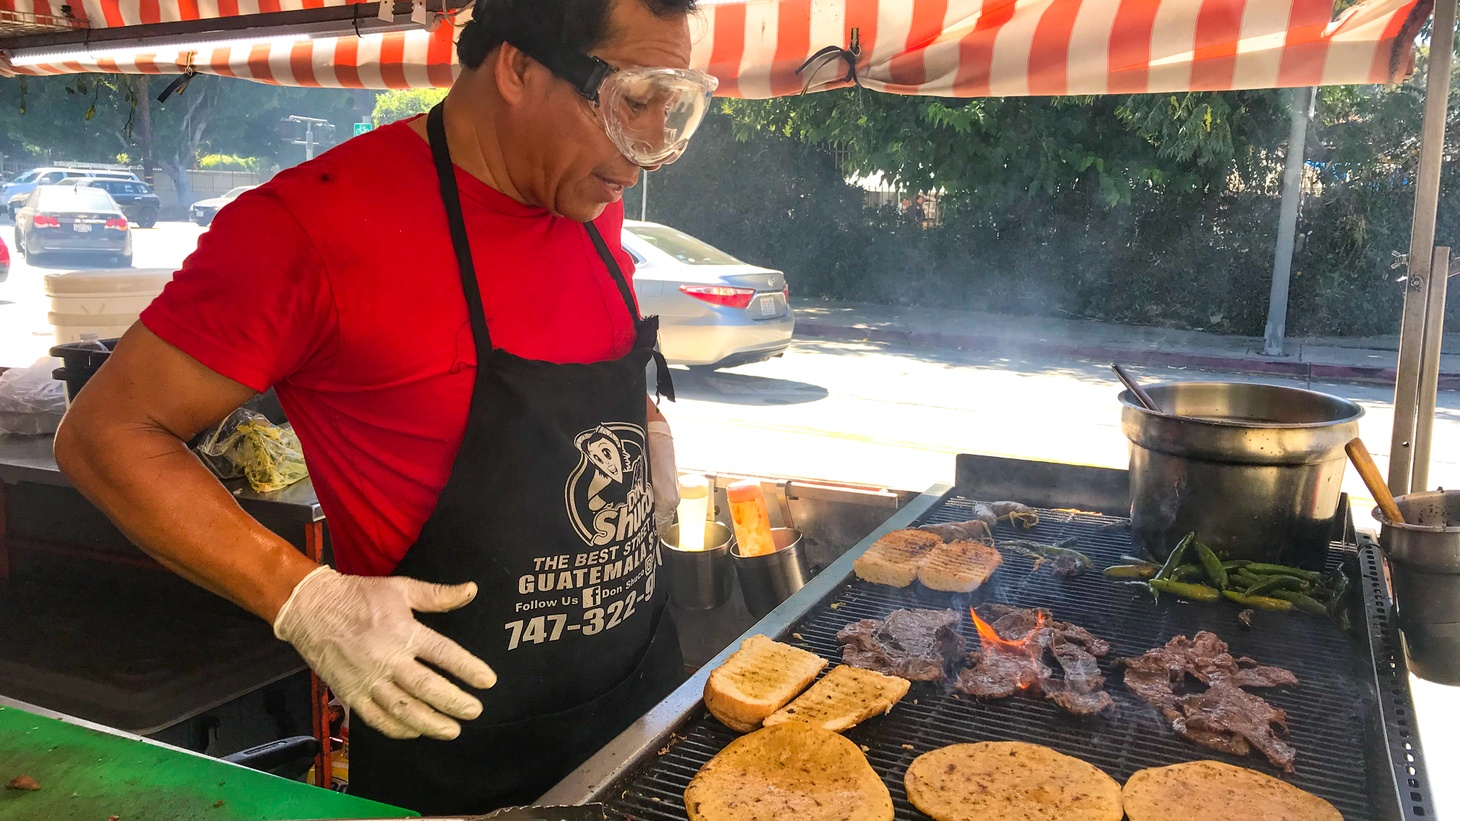 This Guatemalan street food cart is among several that occupy the sidewalk outside the Guatemalan consulate in Echo Park